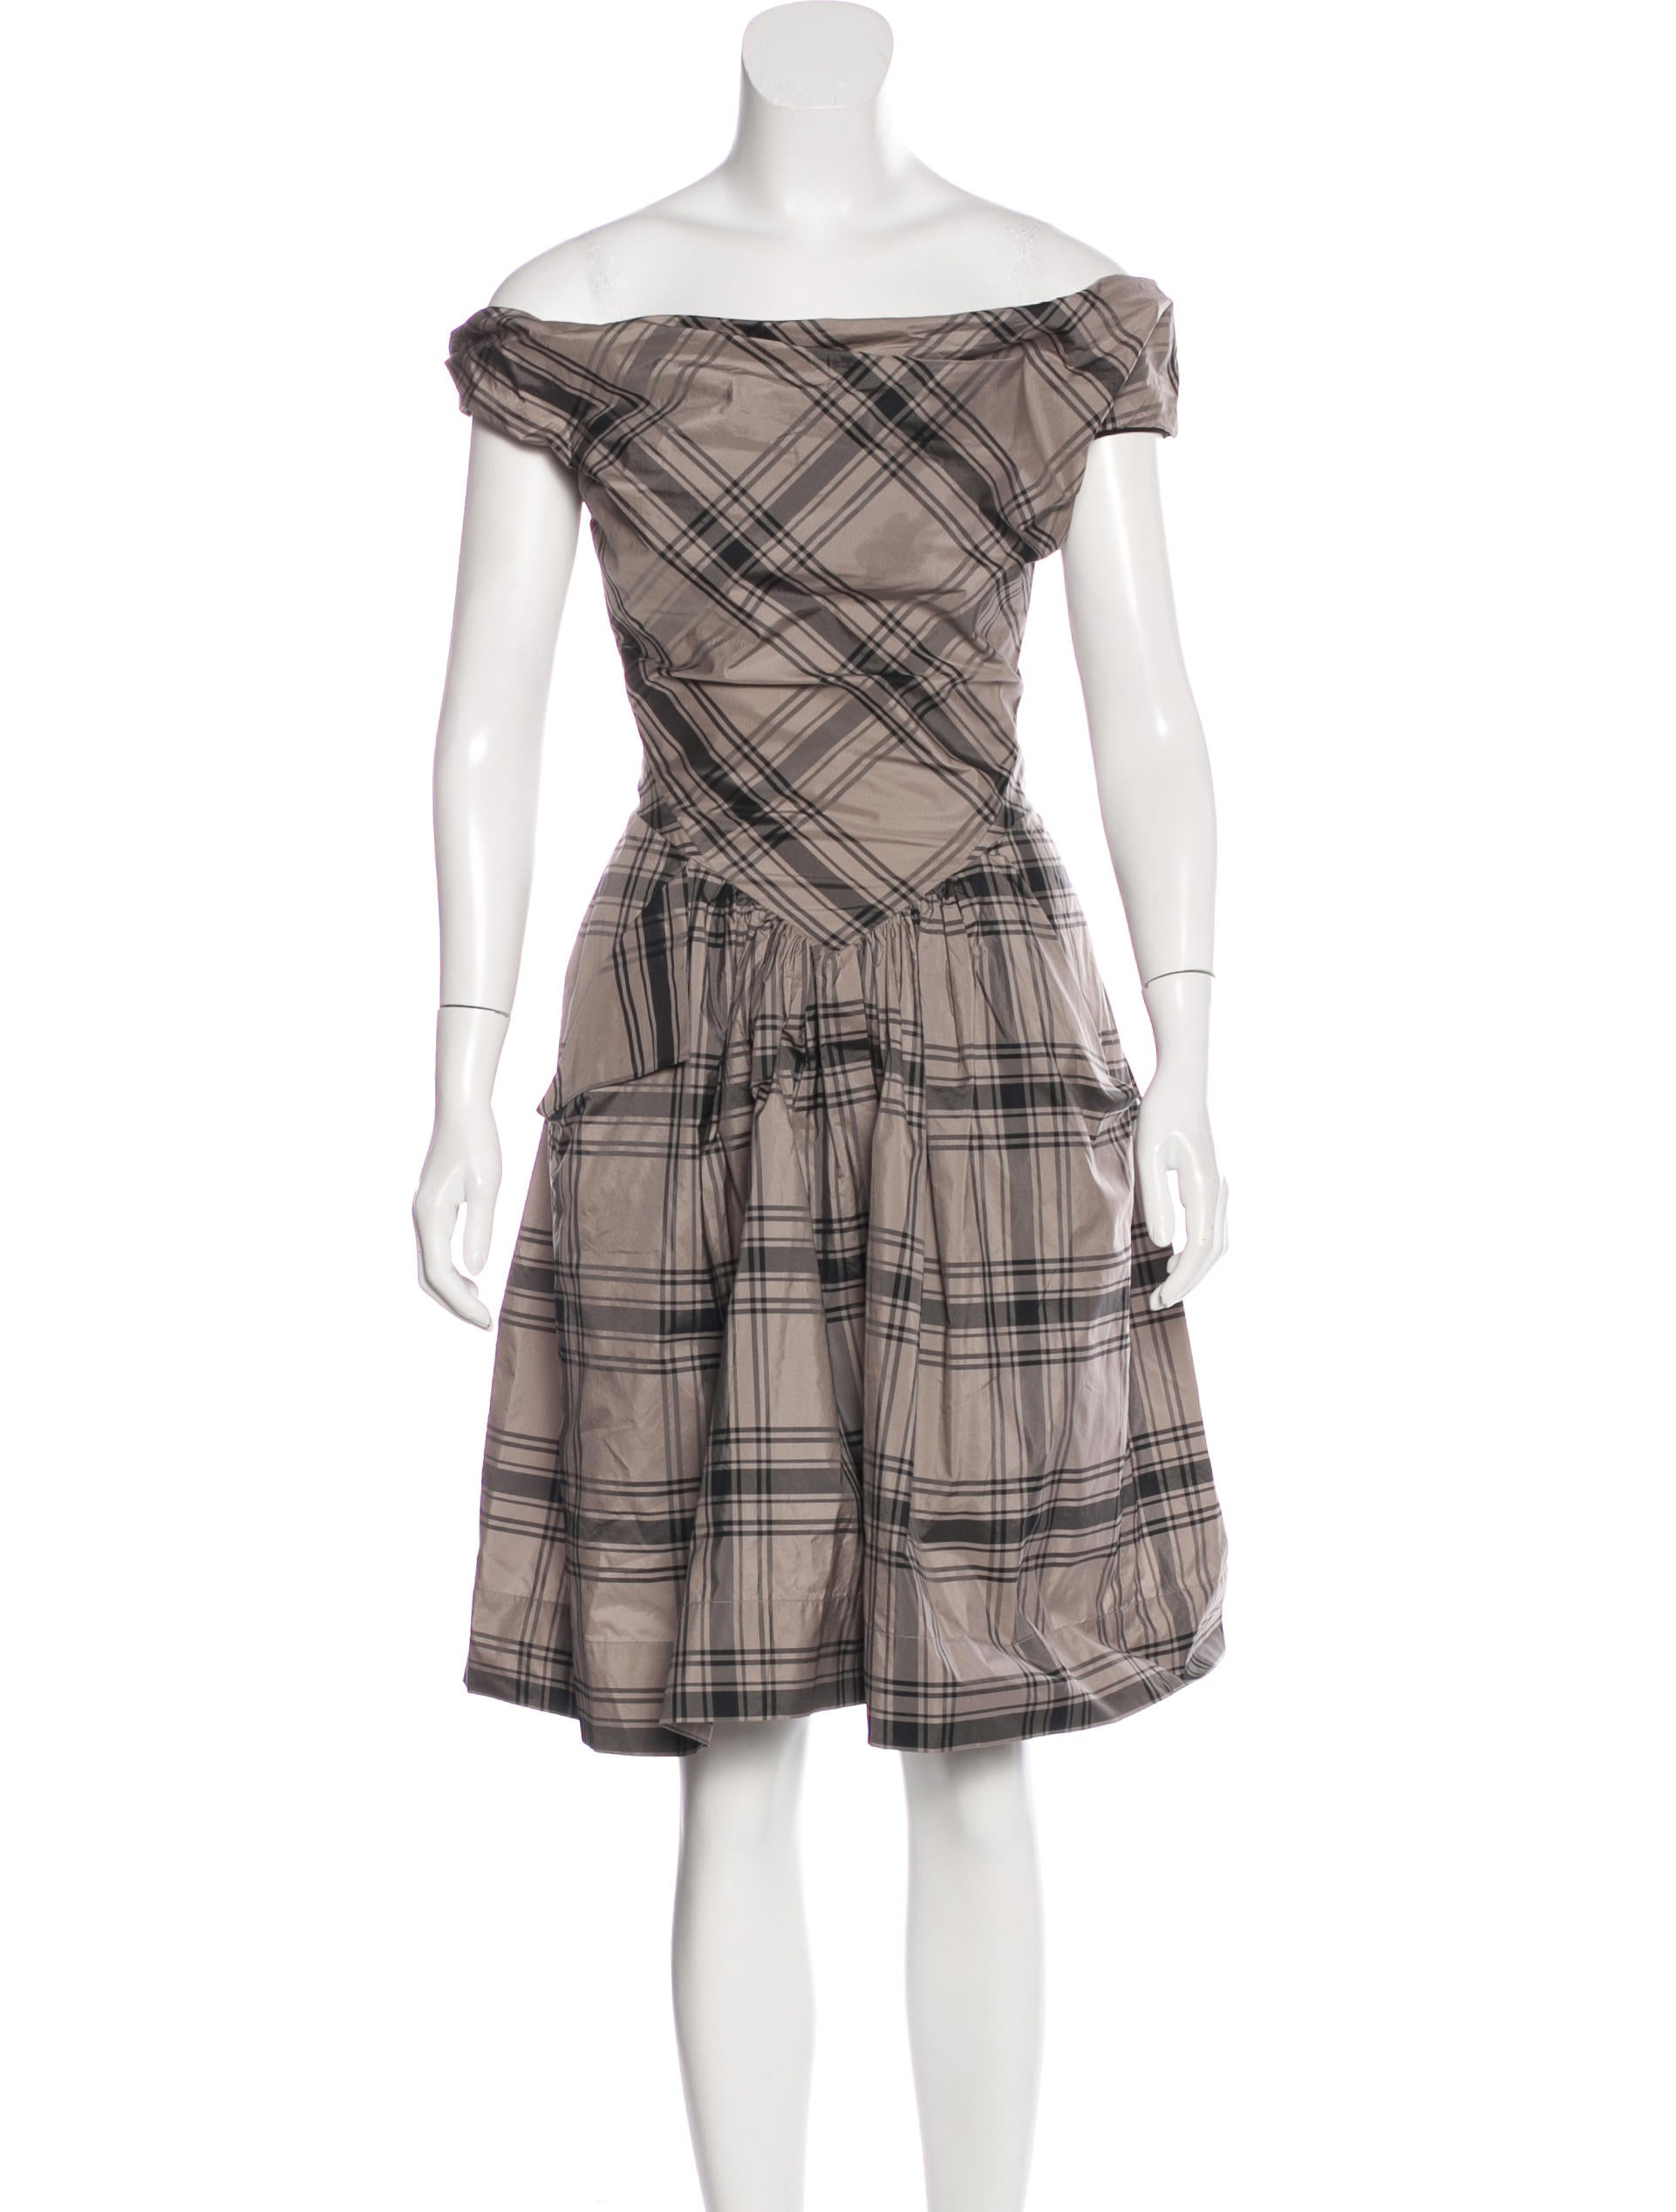 The Button Up Plaid Dress features sleeveless, short length and flared hem -Sleeveless design lets your arms free, it's suitable for summer -Button up add the decorated belt design show casual and sweet.